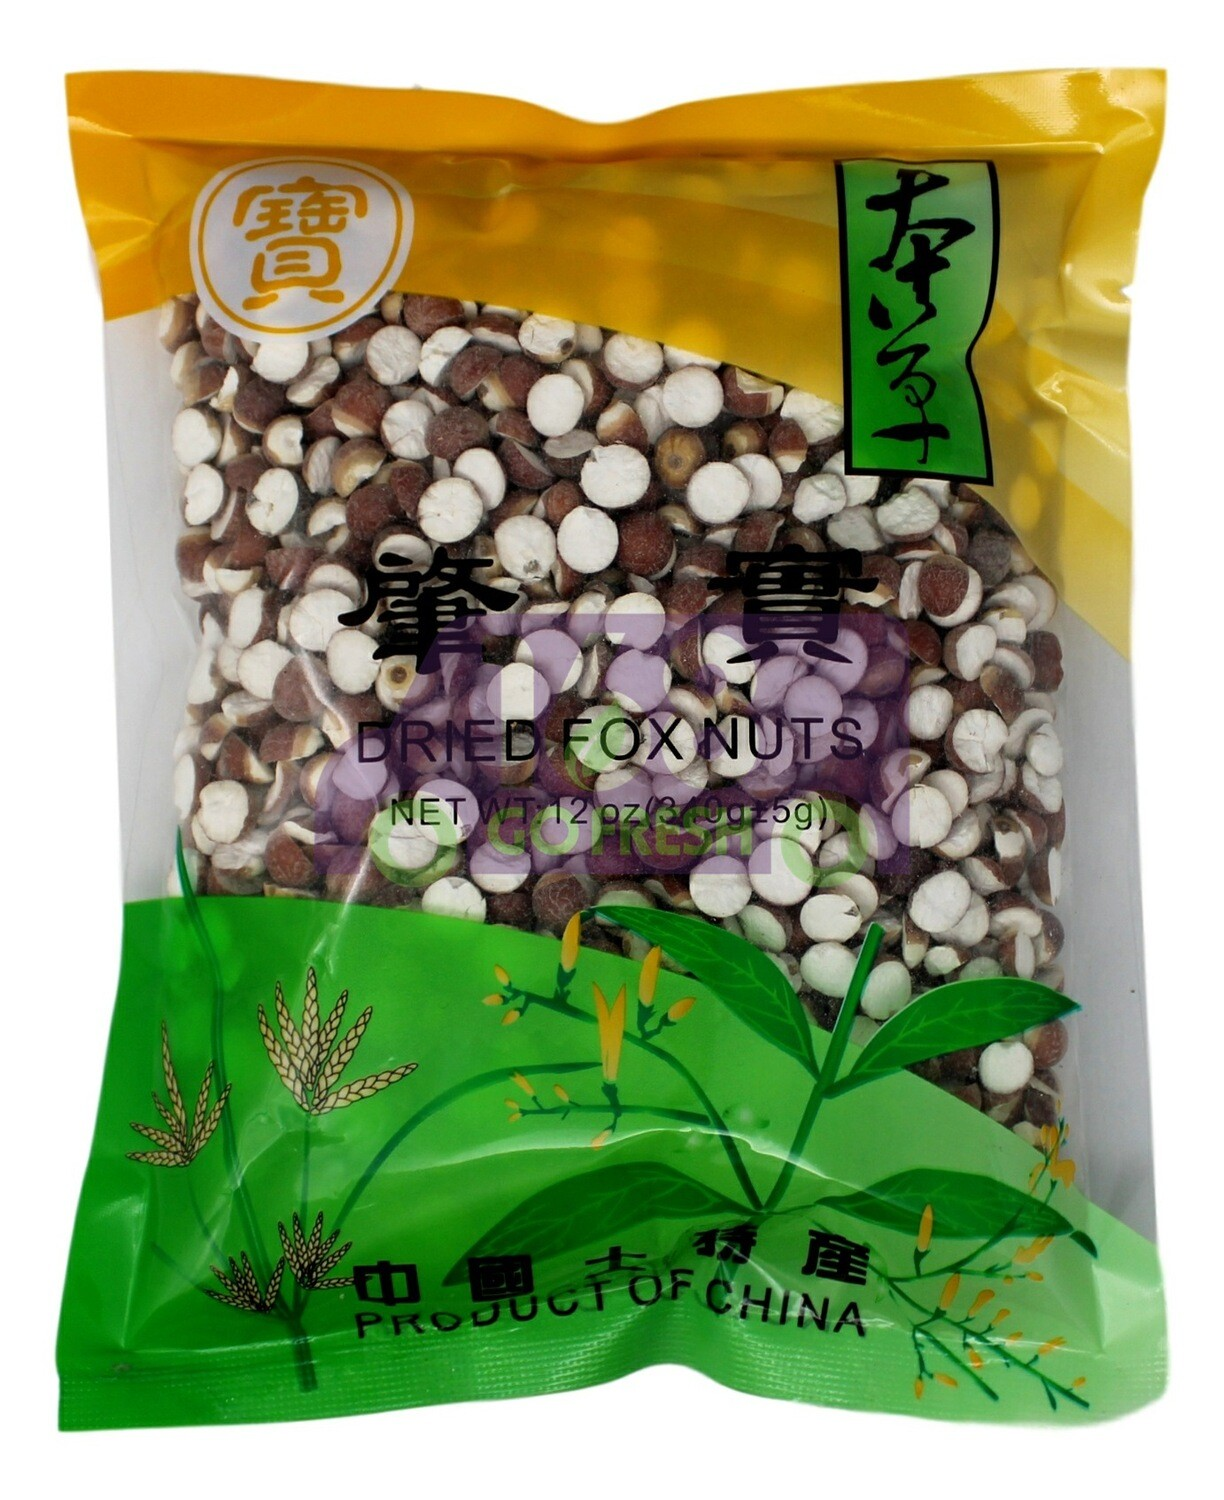 DRIED FOX NUTS 宝牌 肇实